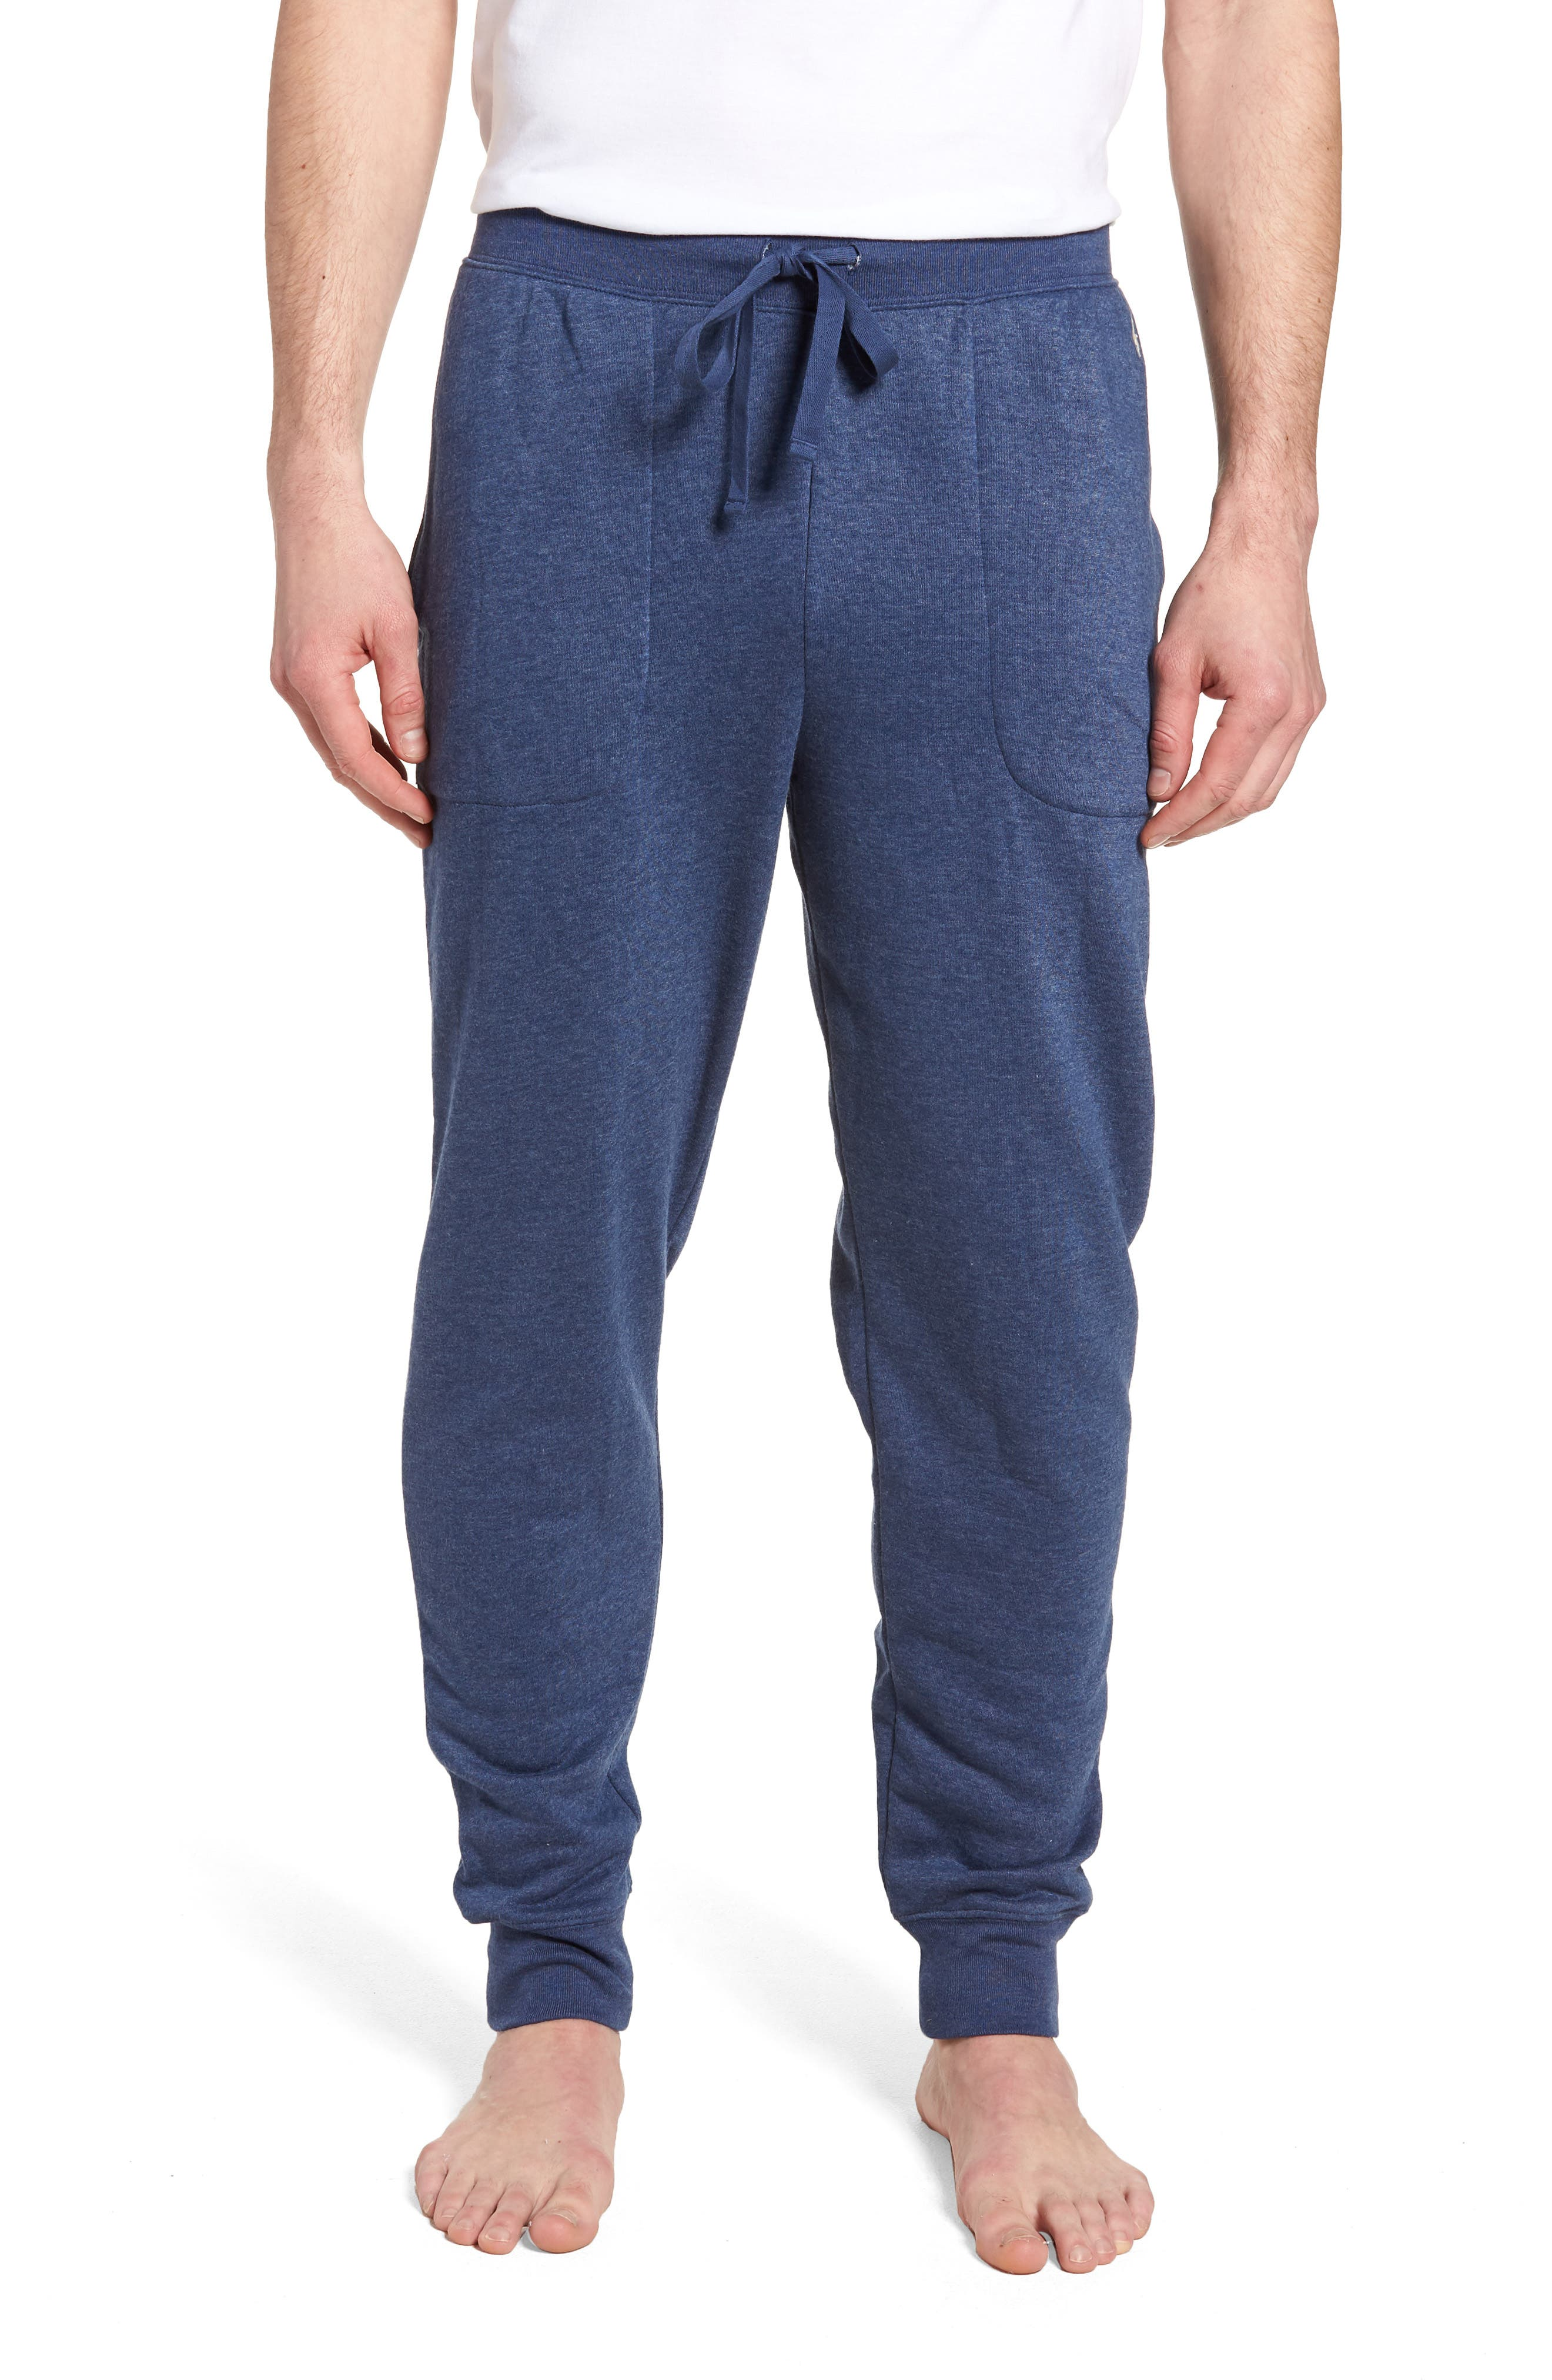 Main Image - Polo Ralph Lauren Brushed Jersey Cotton Blend Jogger Pants